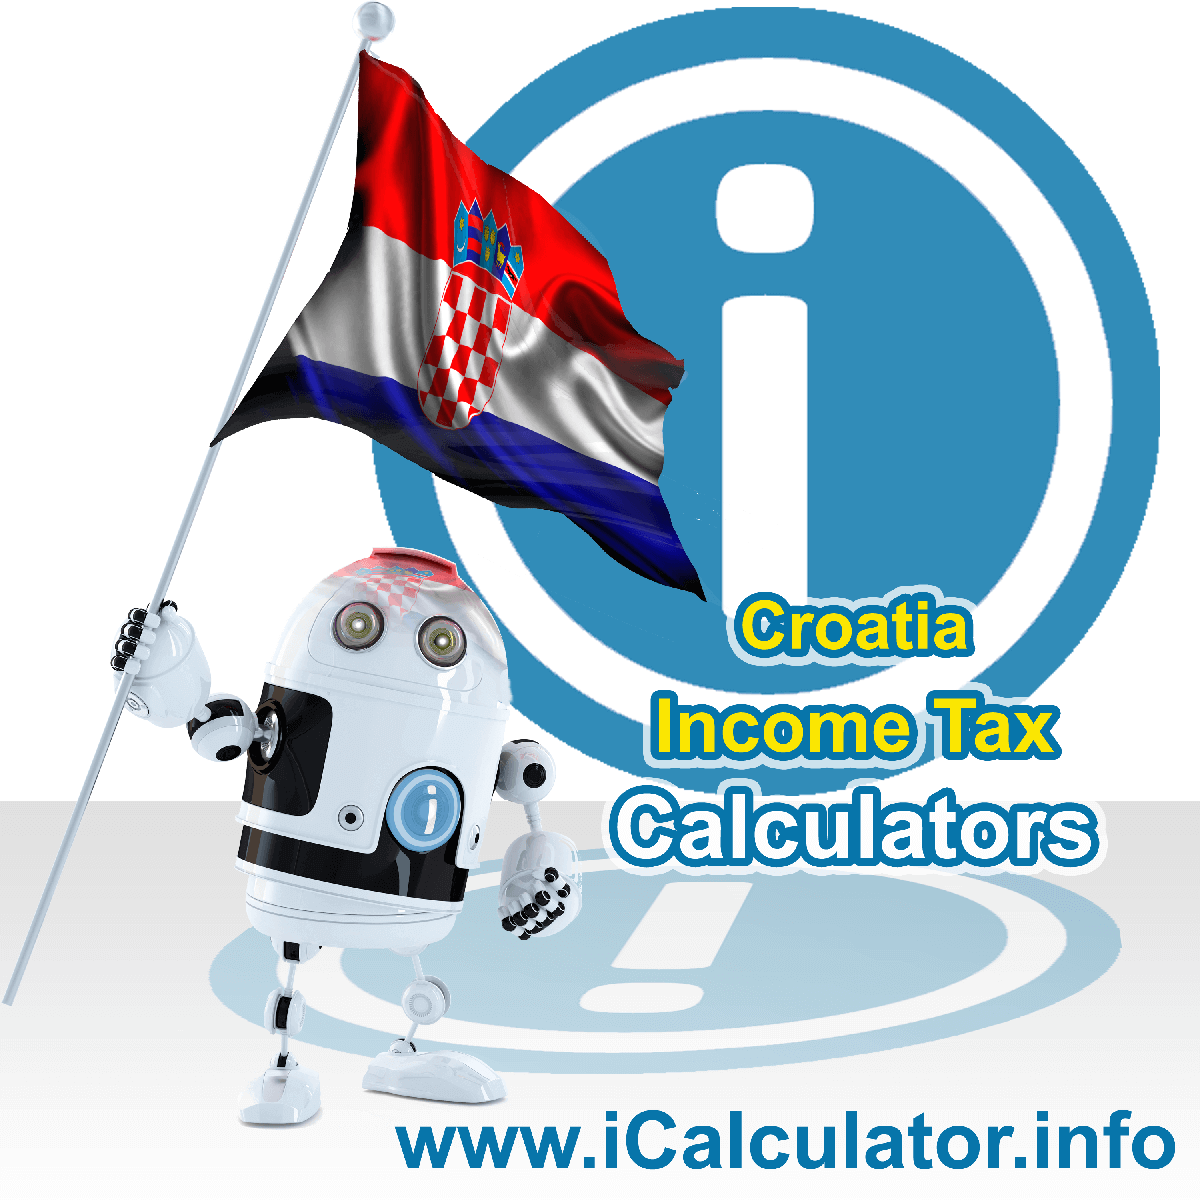 Croatia Income Tax Calculator. This image shows a new employer in Croatia calculating the annual payroll costs based on multiple payroll payments in one year in Croatia using the Croatia income tax calculator to understand their payroll costs in Croatia in 2020